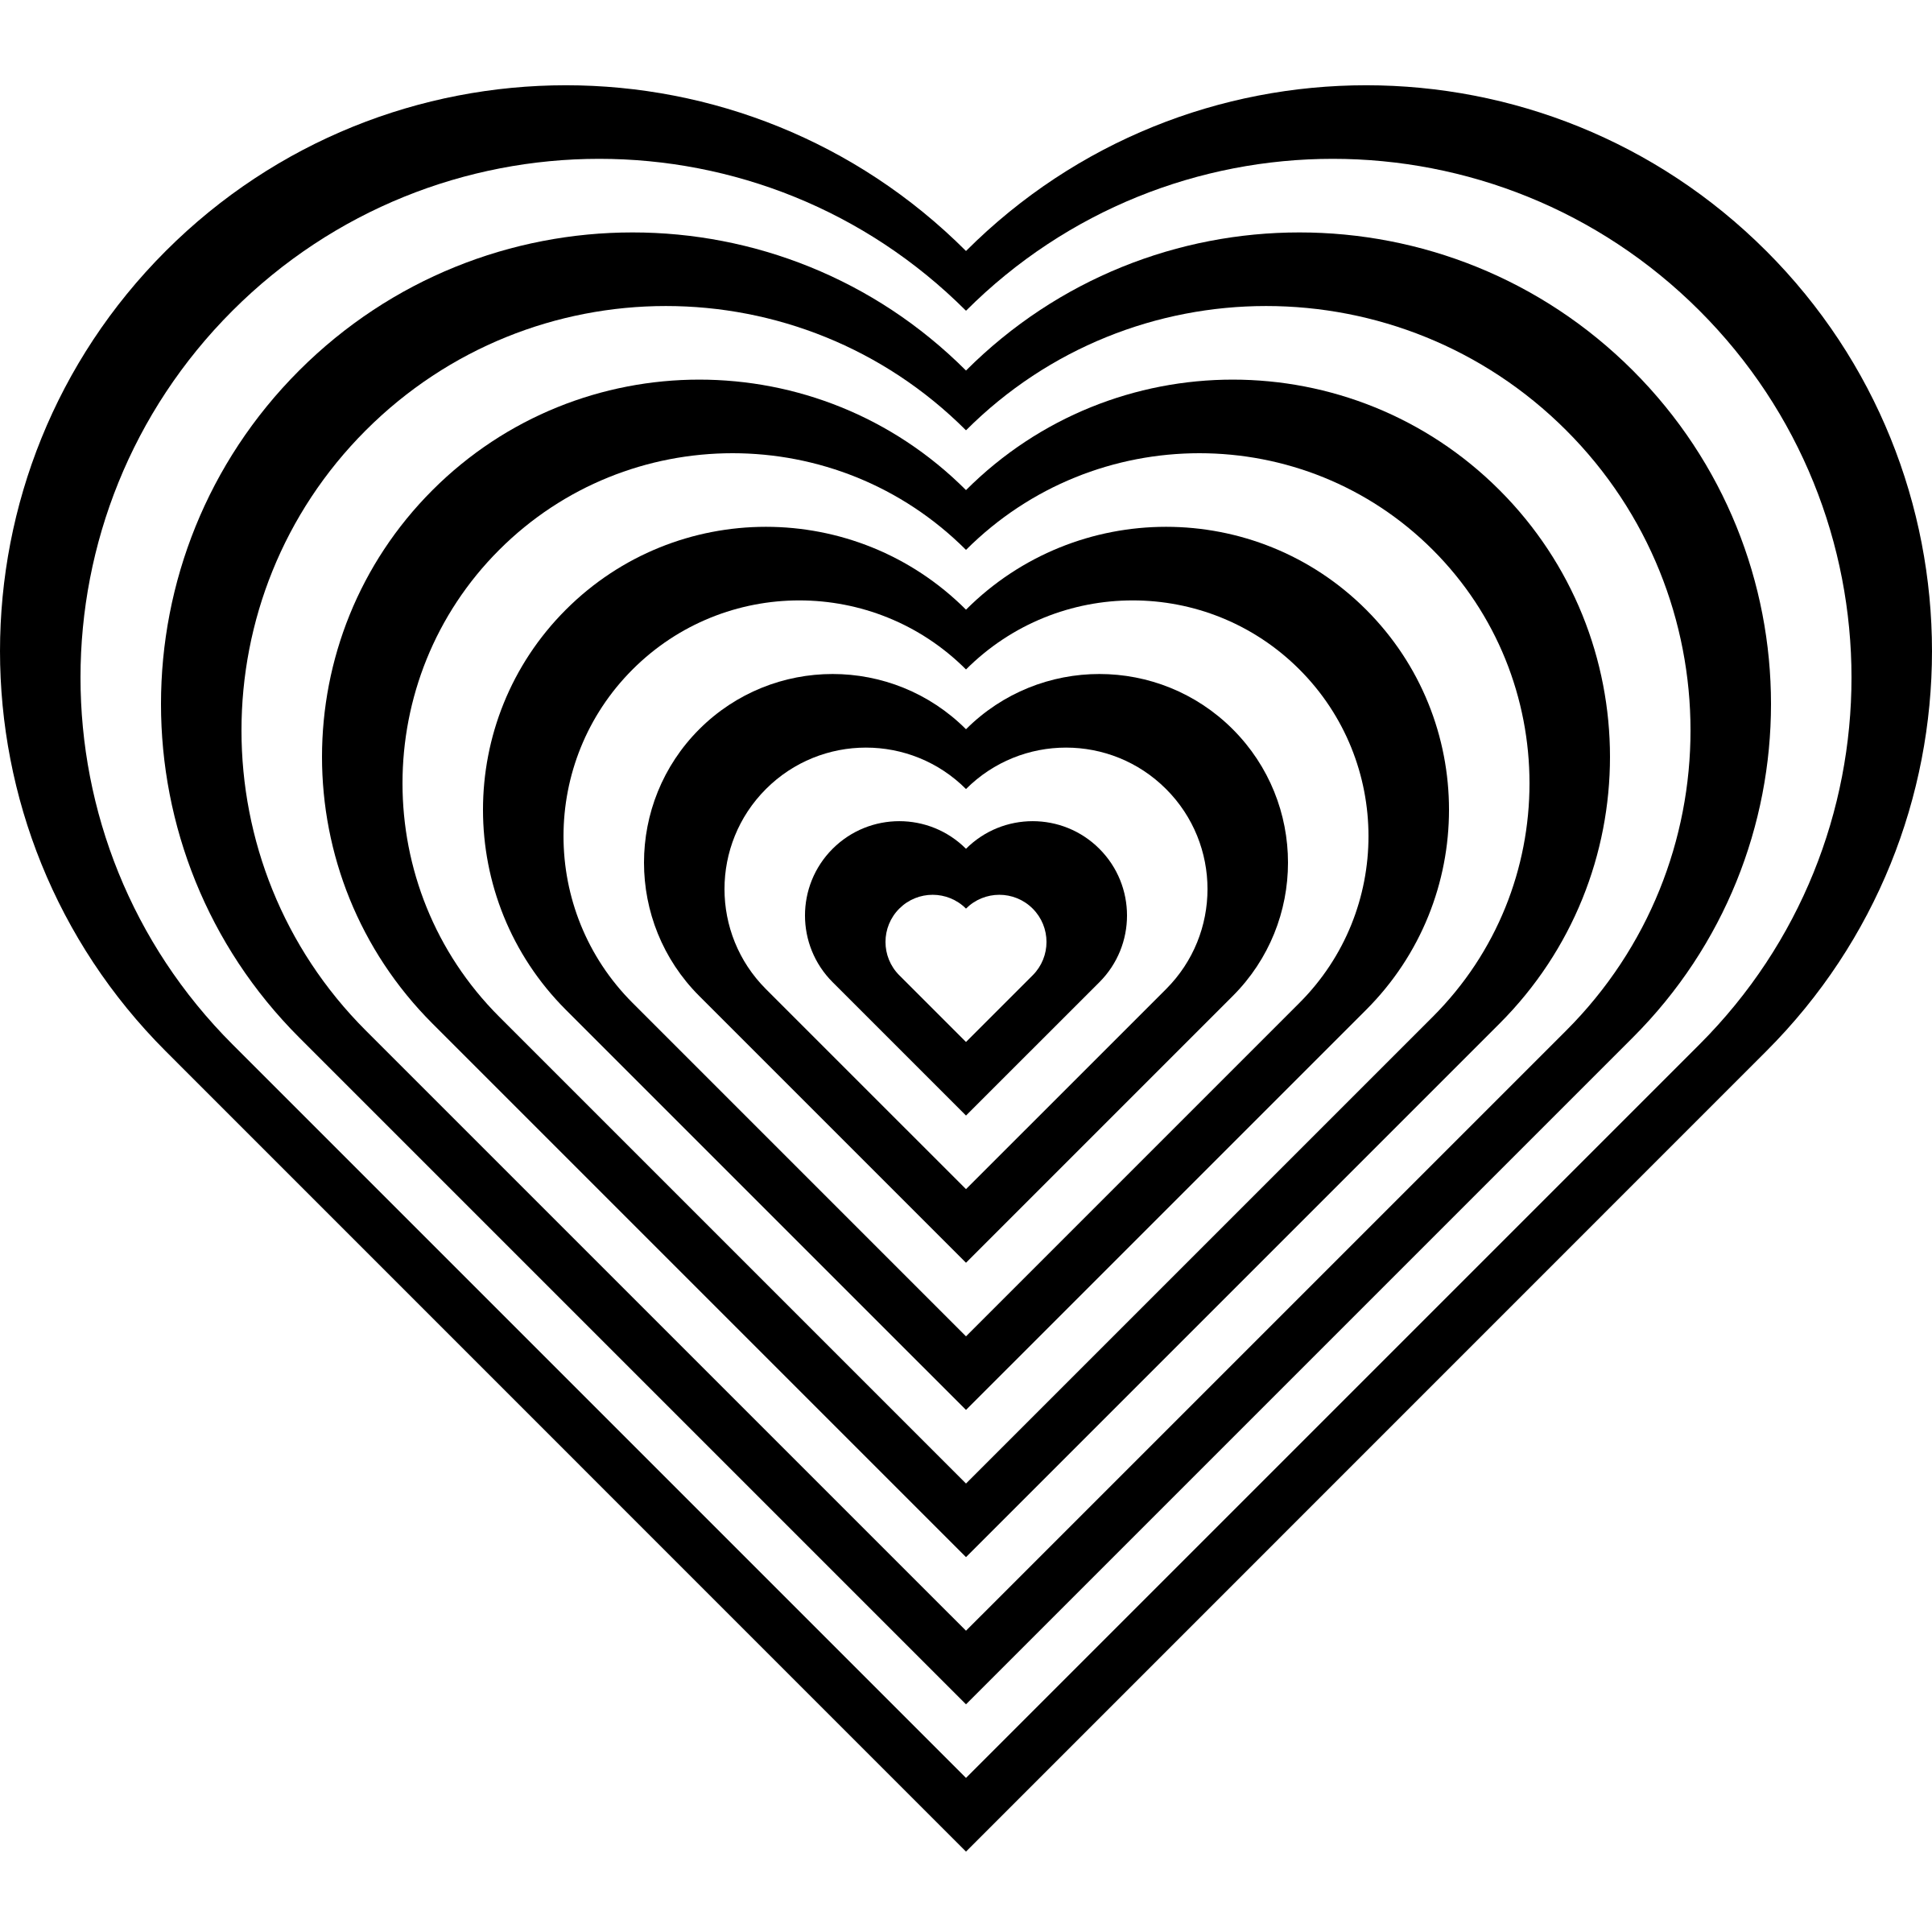 Geometric heart png. Zebra icons free and